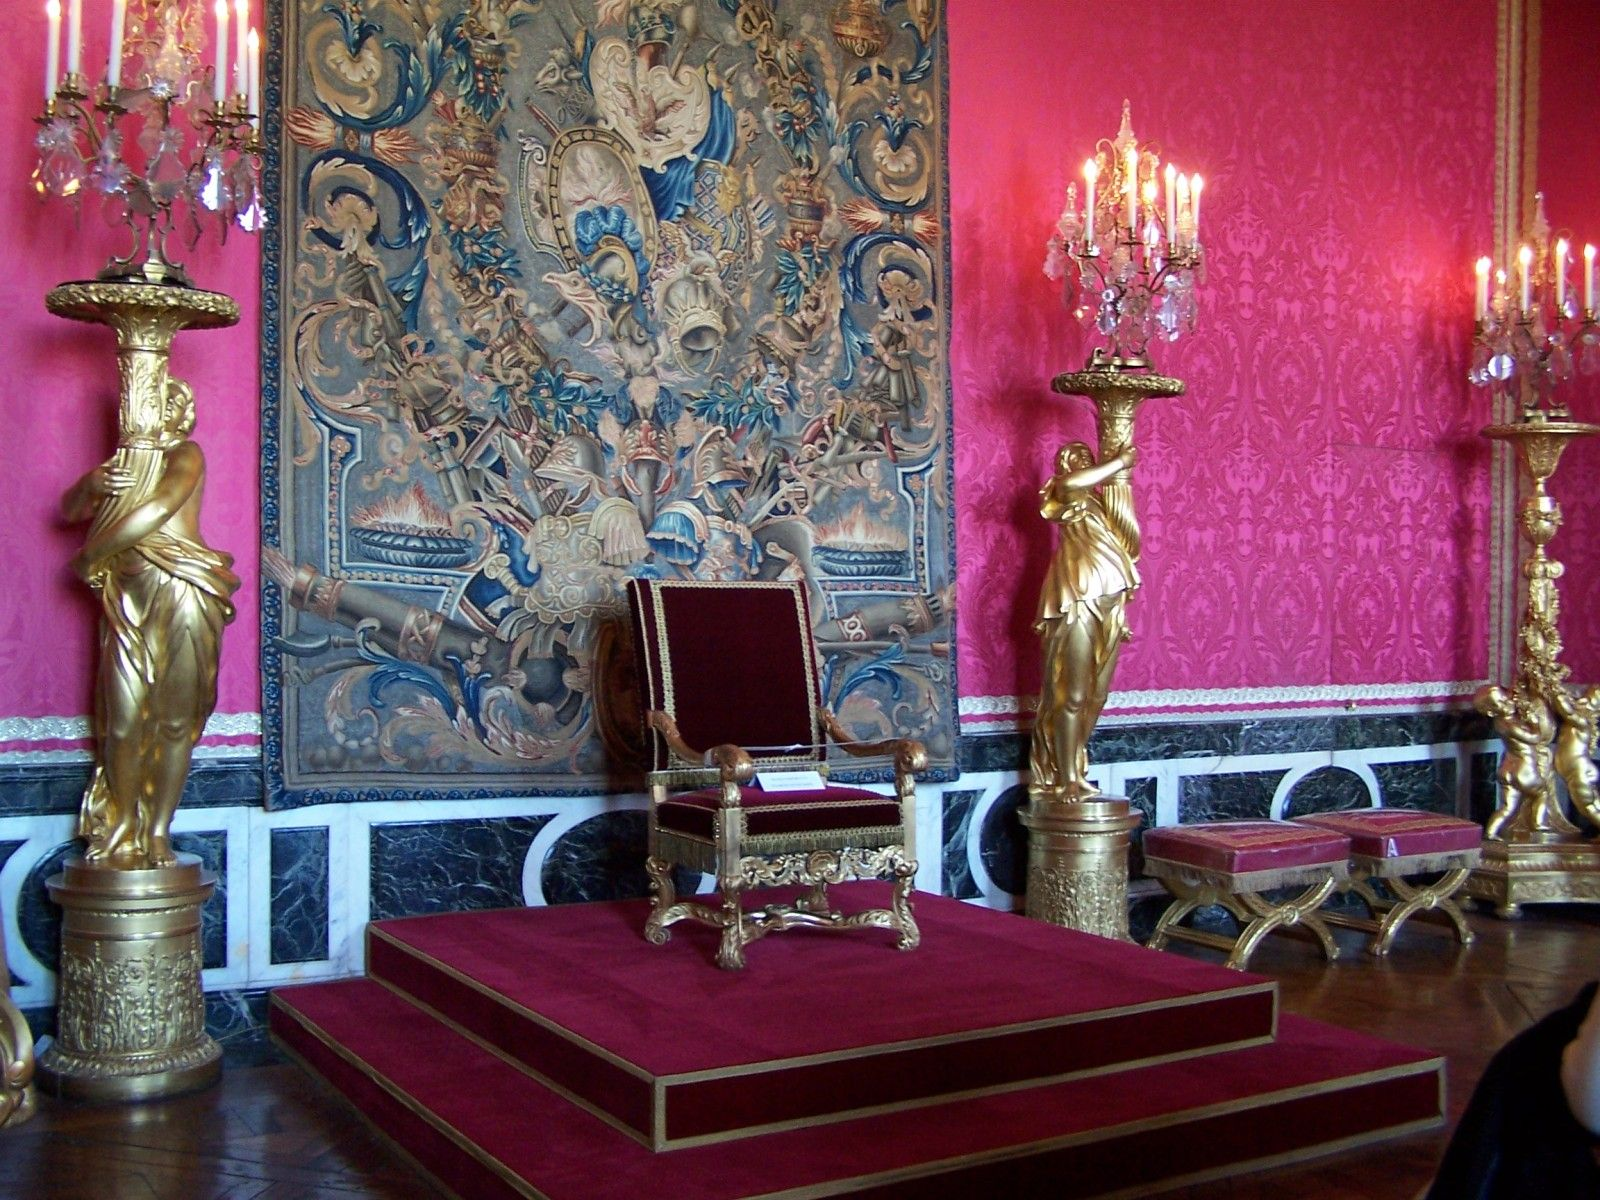 Chateau De Versailles Grands Appartements Du Roi Salon D Apollon